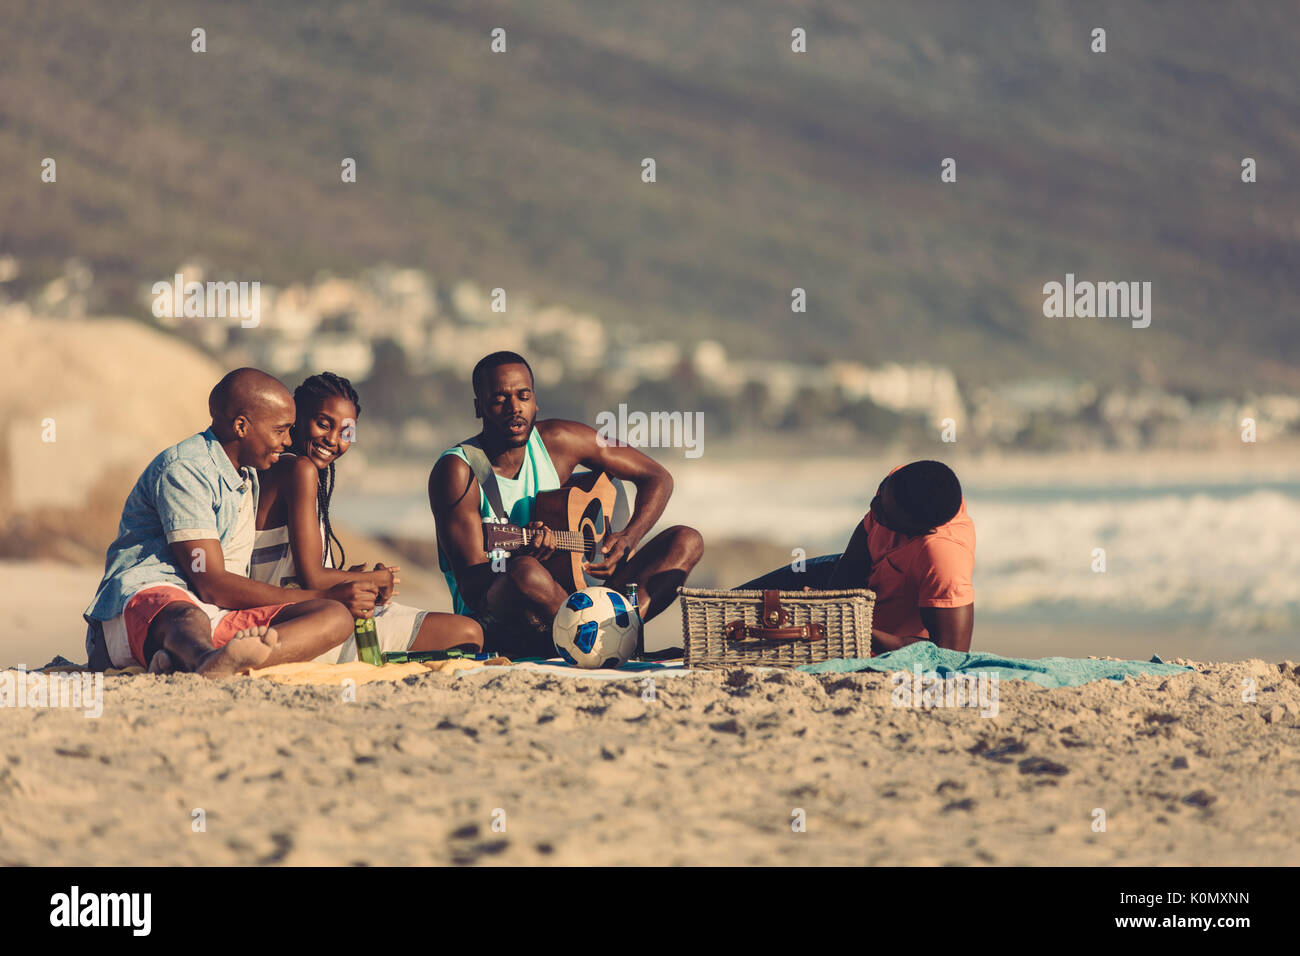 Afro american young man with guitar singing a song for his friends. Group of friends on vacation relaxing at the beach. - Stock Image